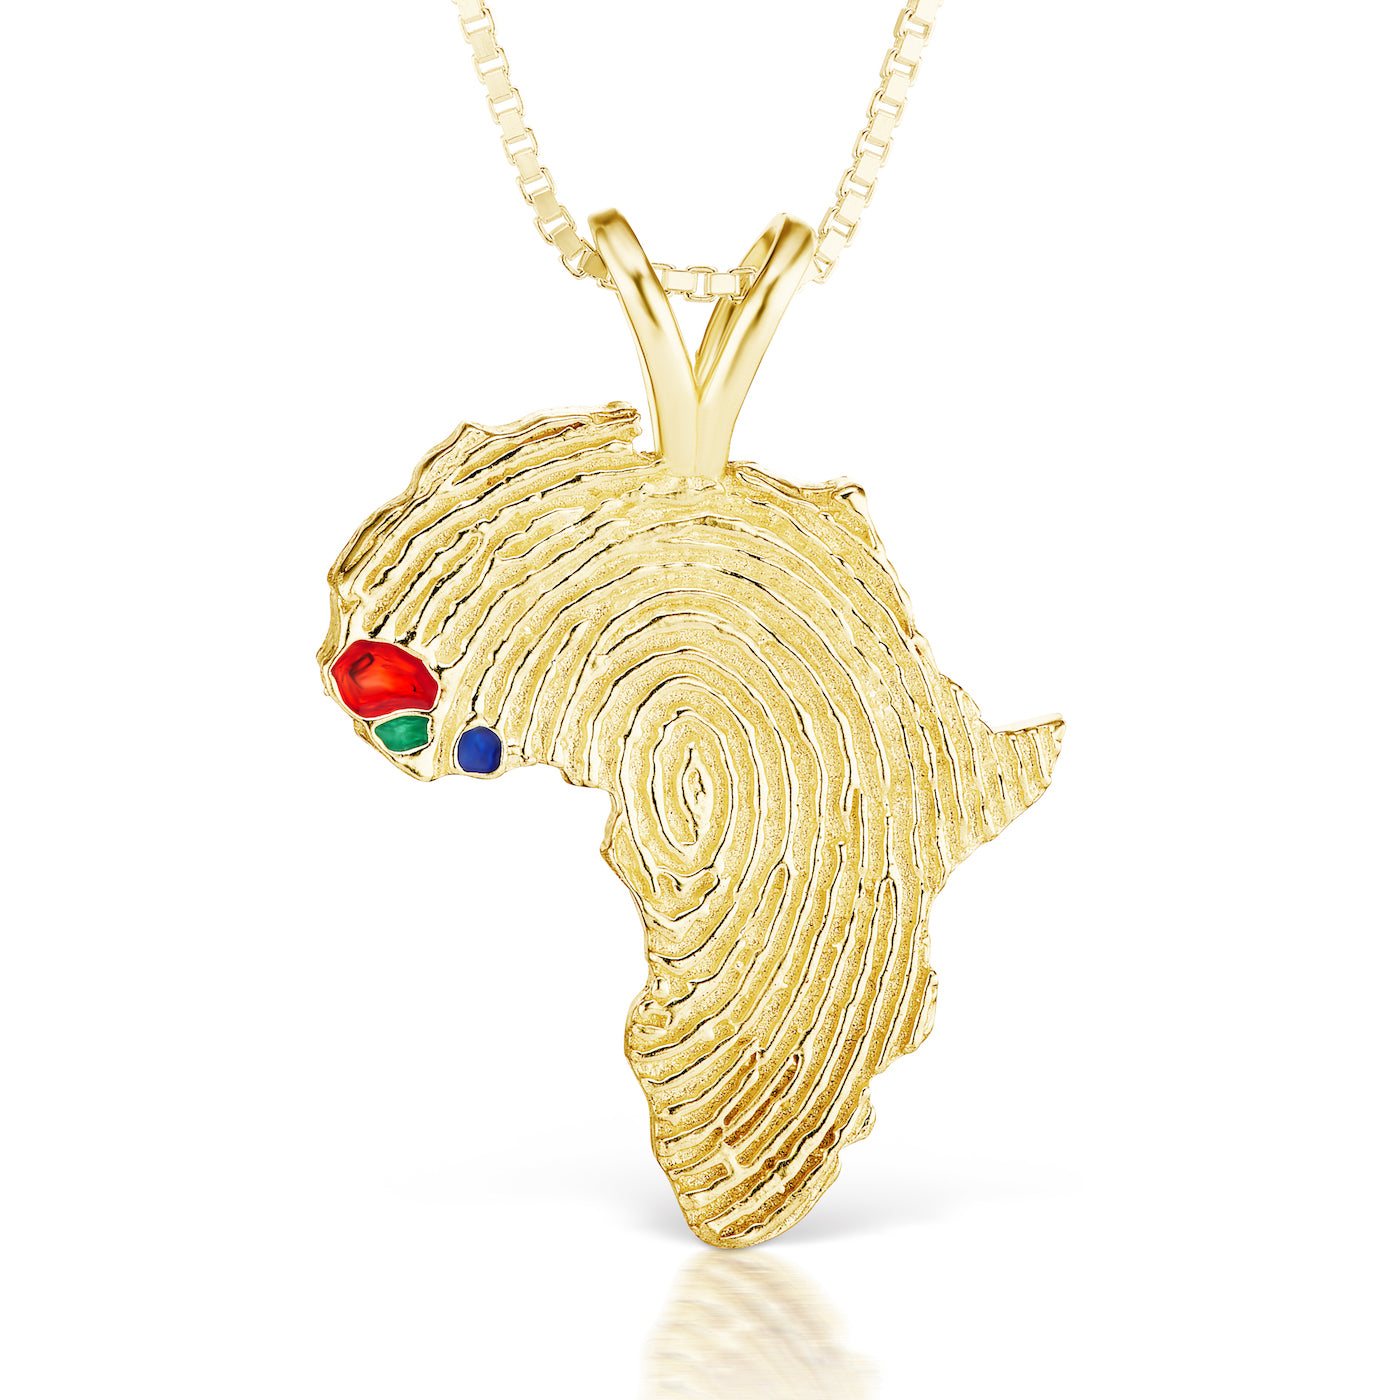 Senegal, Guinea-Bissau and Sierra Leone Heirloom Pendant - 14K Yellow Gold 34mm